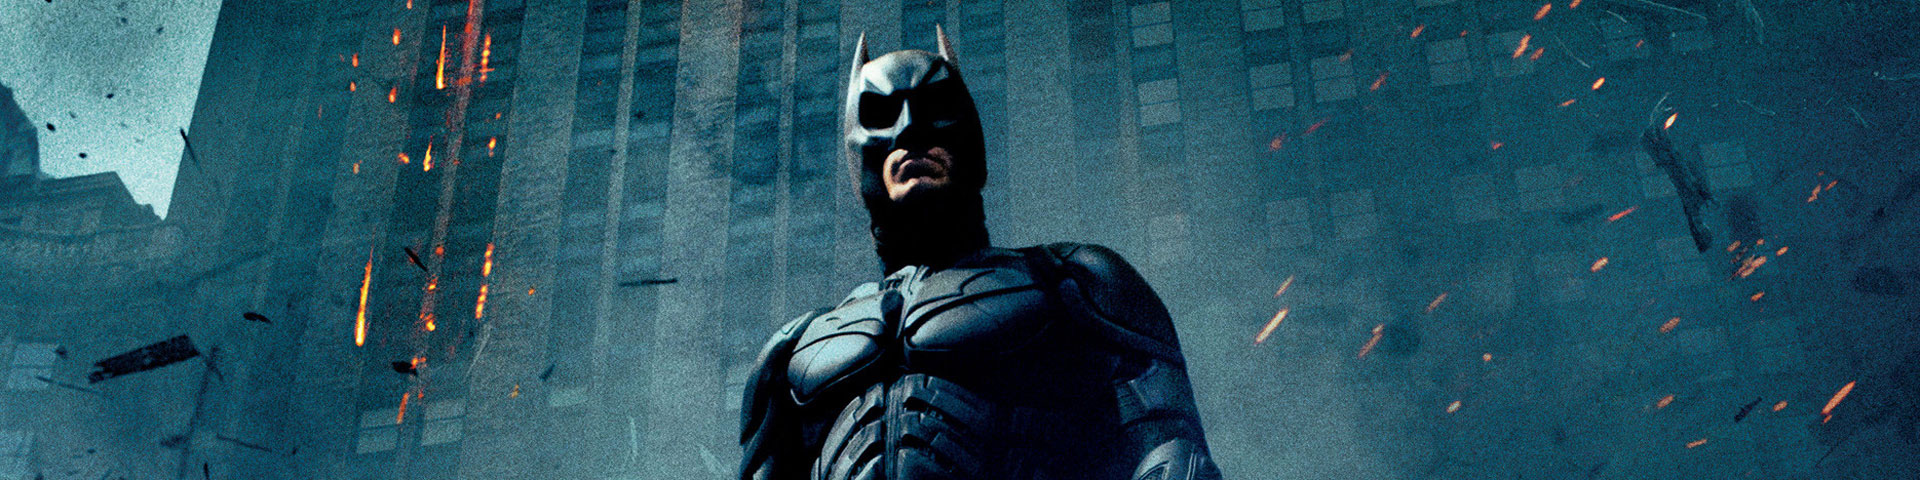 Batman, in his bat armor, stands in front of an office building. Smoke, ash, and cinders swirl through the air.